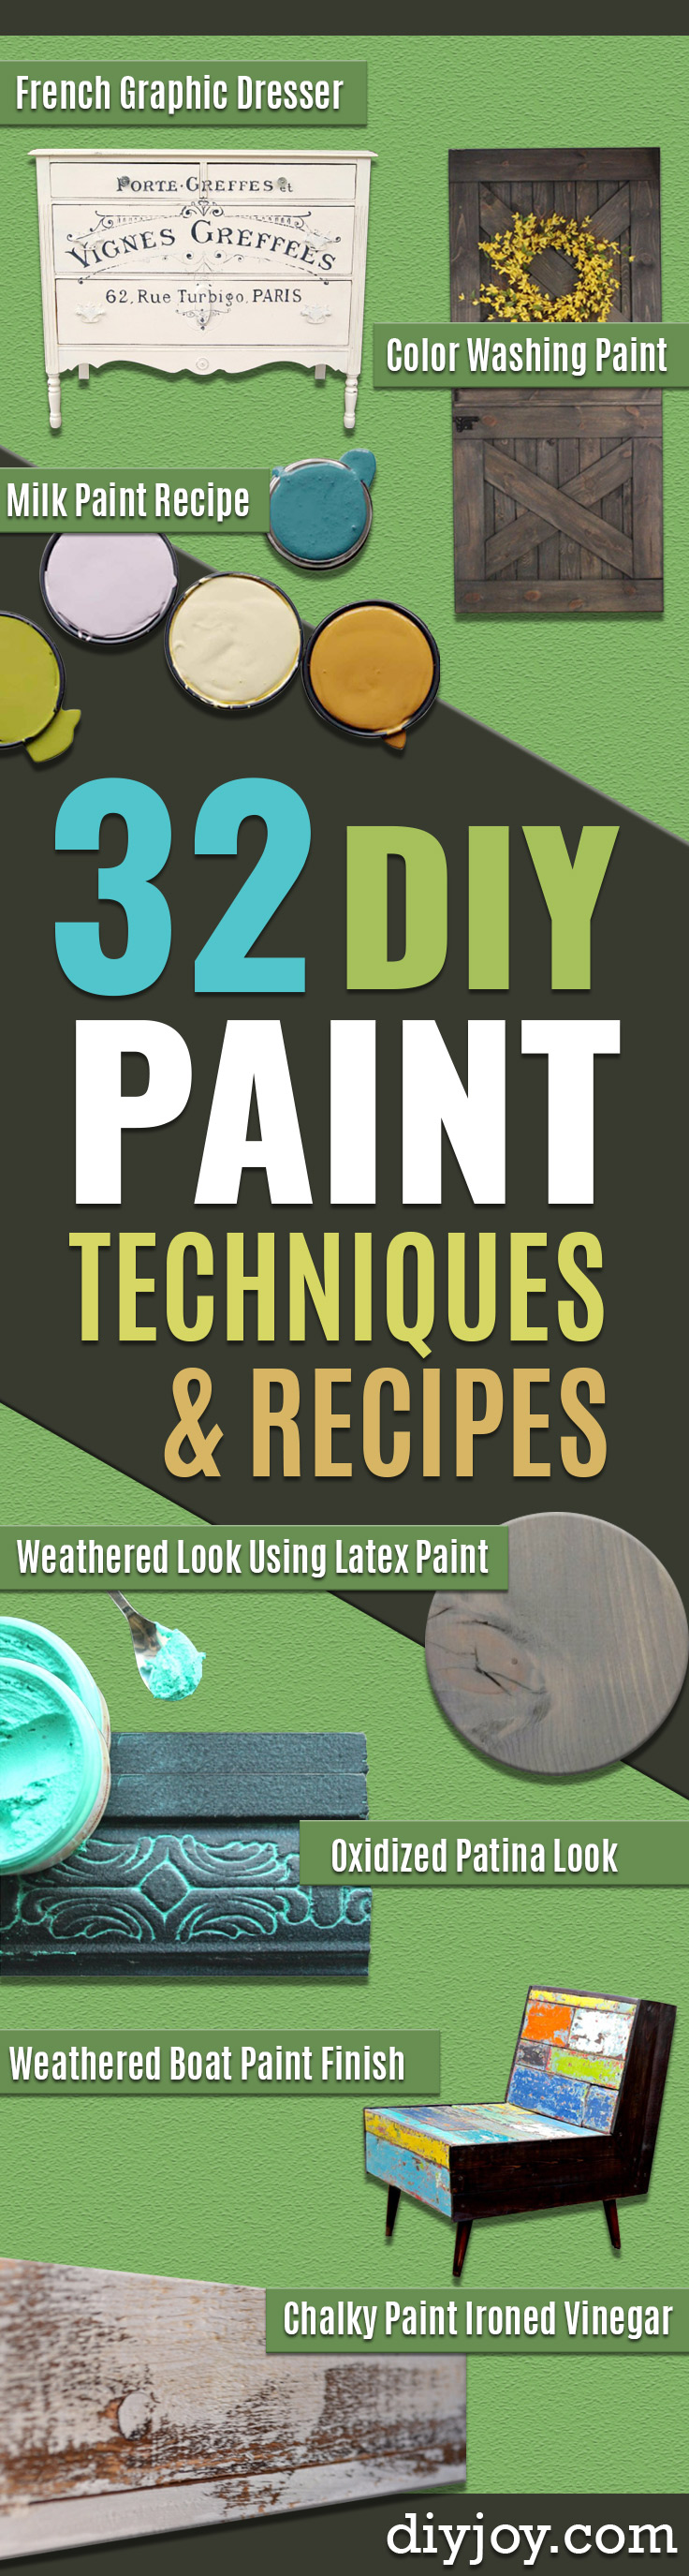 32 DIY Paint Techniques and Recipes - Cool Painting Ideas for Walls and Furniture - Awesome Tutorials for Stencil Projects and Easy Step By Step Tutorials for Painting Beautiful Backgrounds and Patterns. Modern, Vintage, Distressed and Classic Looks for Home, Living Room, Bedroom and More